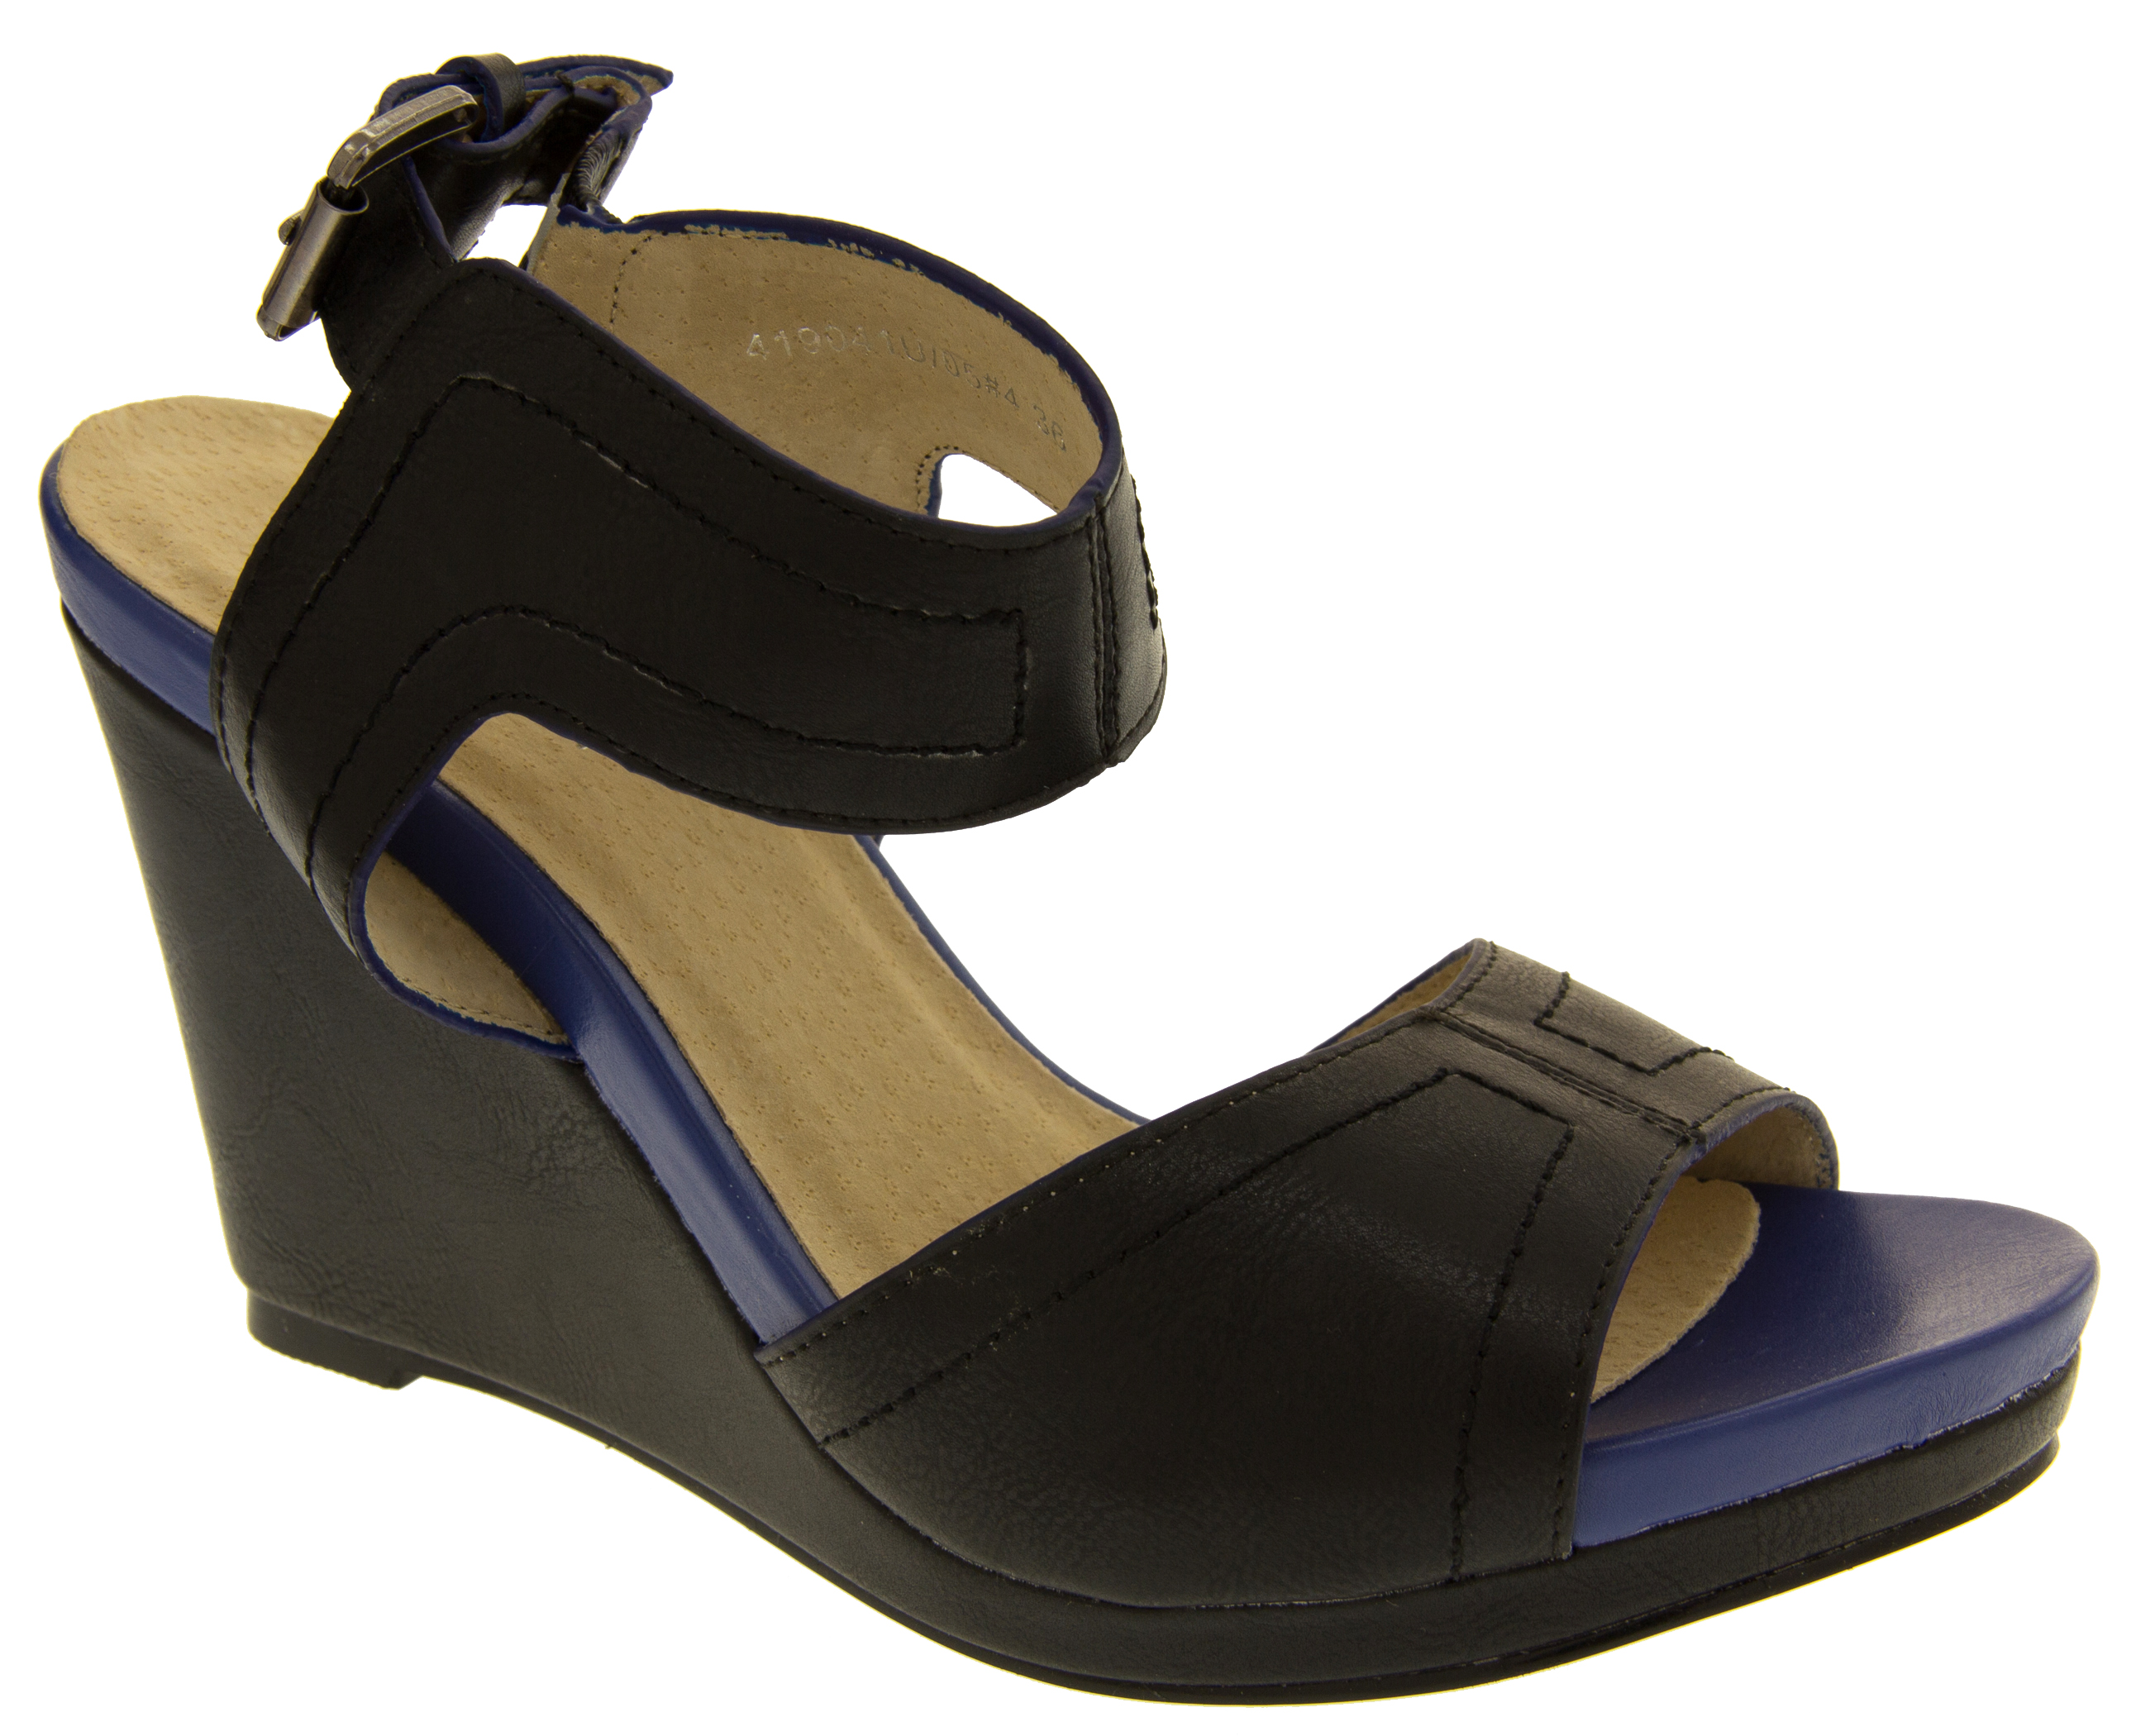 Womens Faux Leather High Heel Wedge Sandals Ladies Strappy